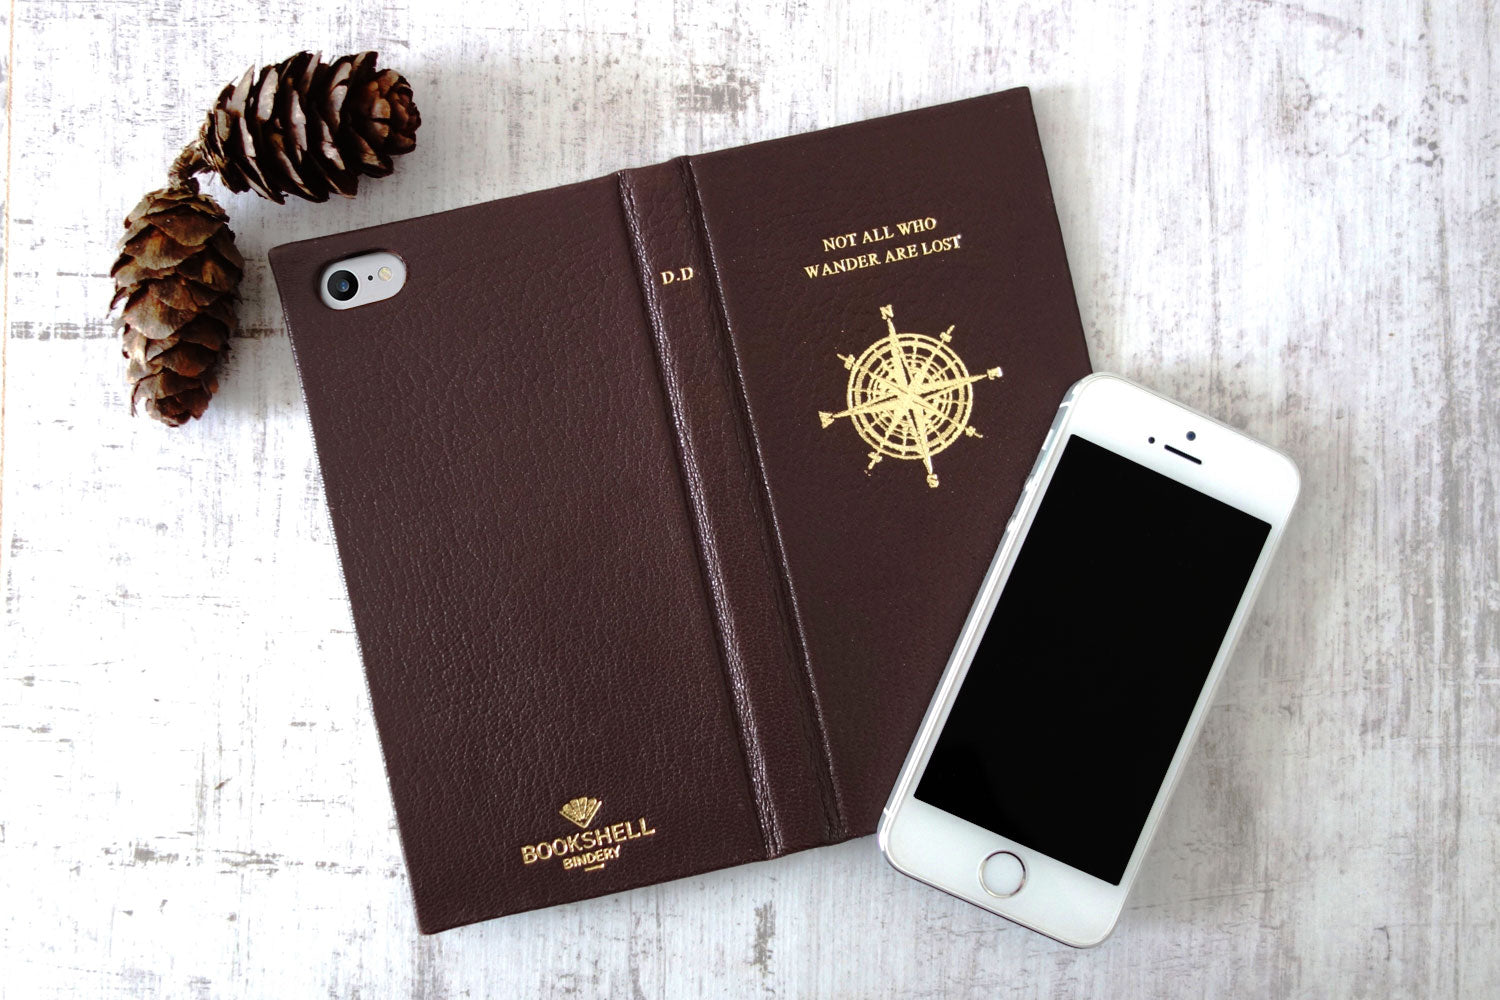 Custom leather phone cases from Bookshell in brown leather with compass picture not all who wander are lost